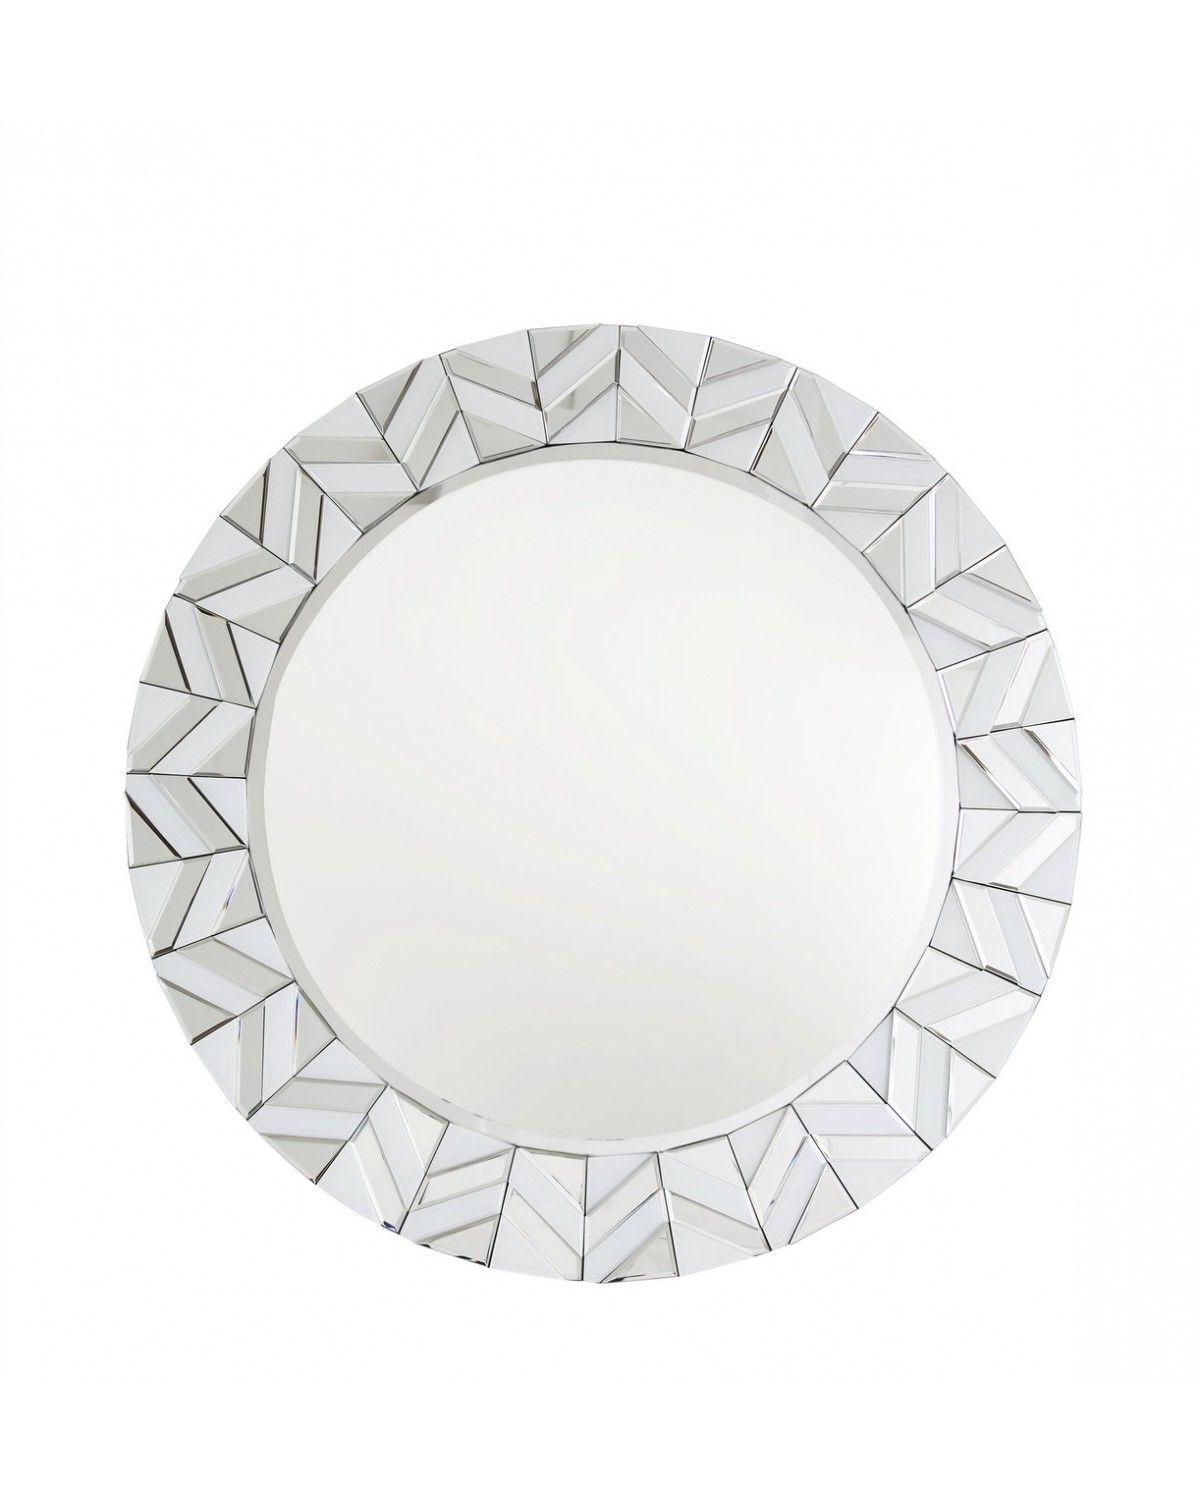 Current White New York Tiled Round Wall Mirror Pertaining To Round White Wall Mirrors (View 12 of 20)